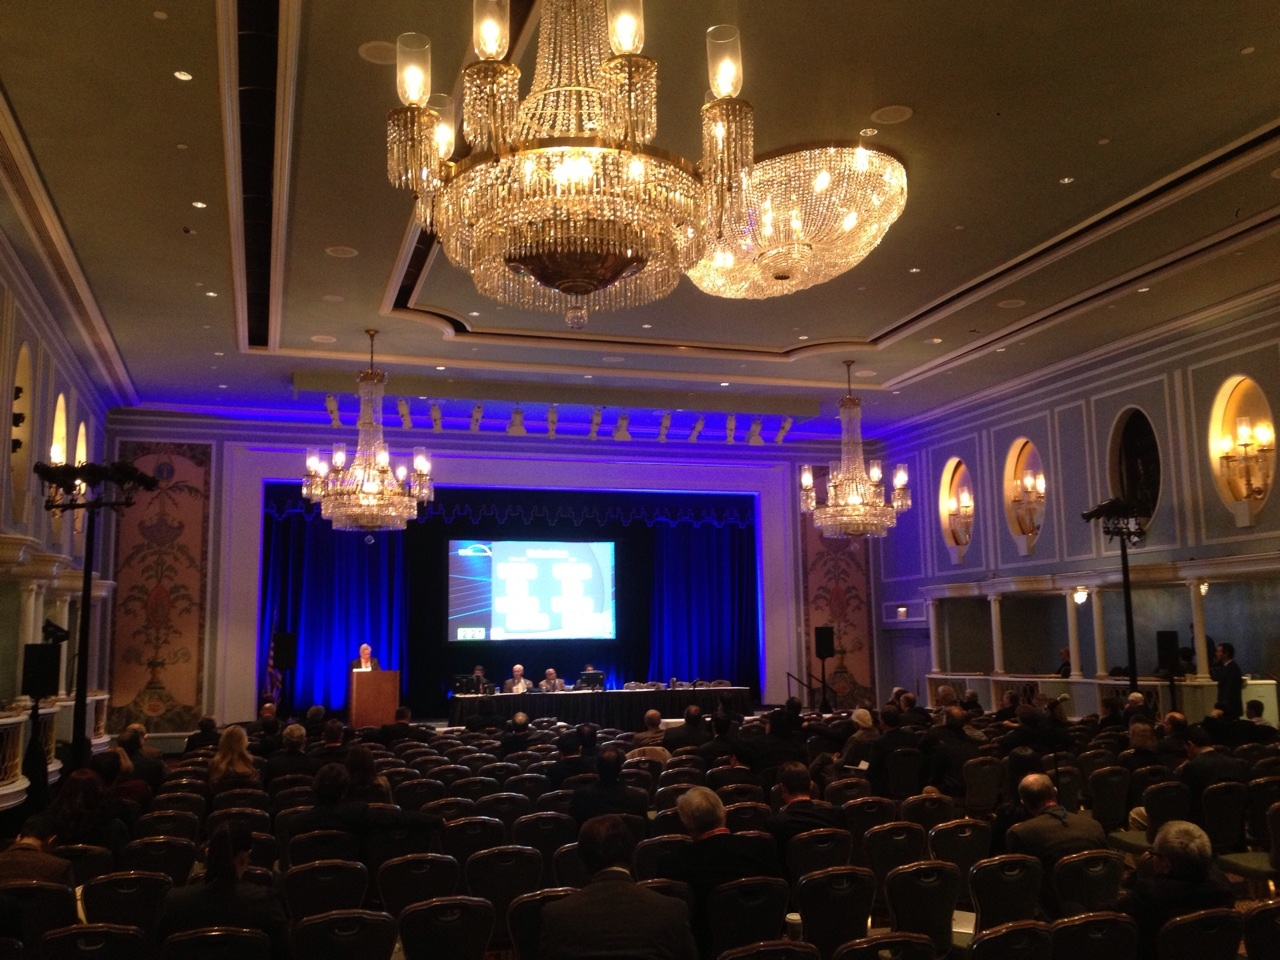 VEITH symposium 2014